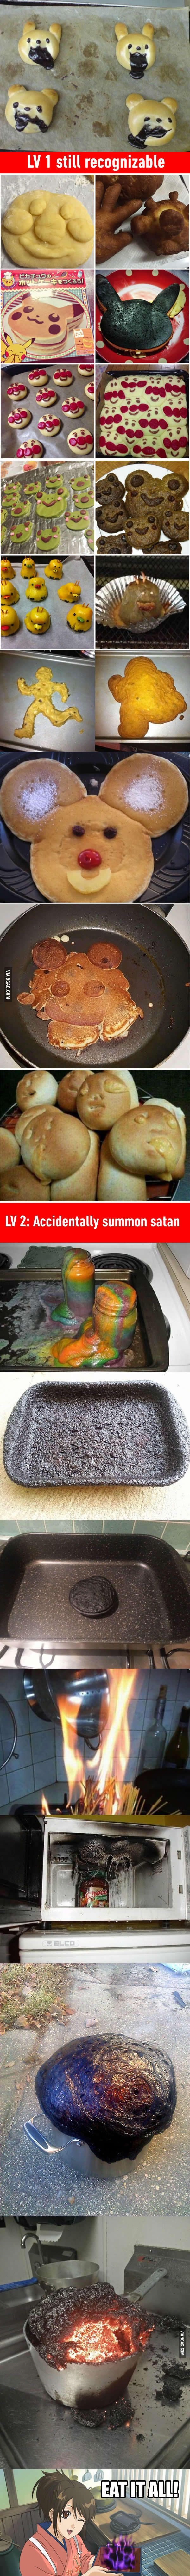 Viral pictures of the day: 16 cooking fails that turn the food into hellish creatures